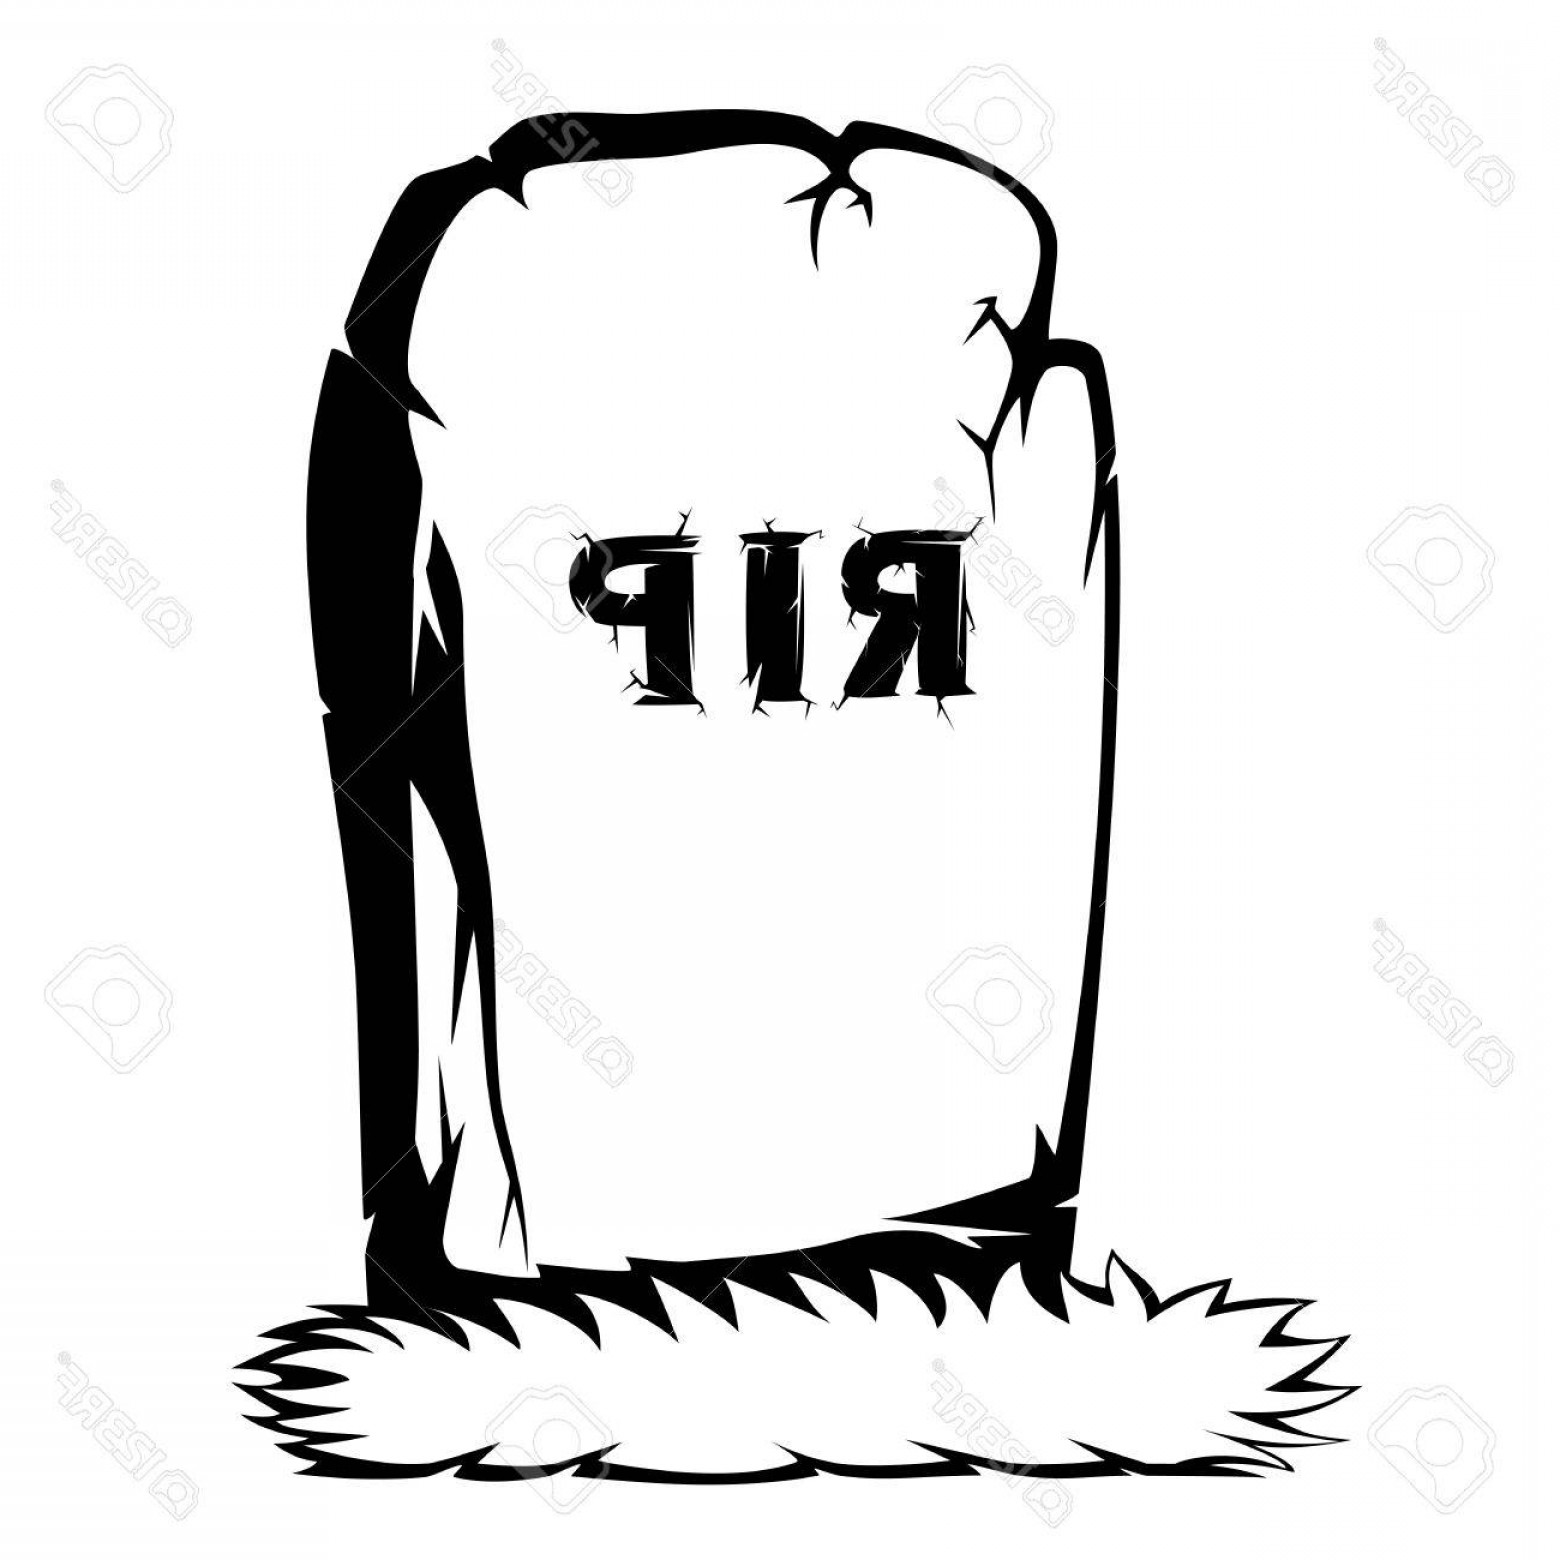 Gravestone Black And Whit Vector JPEG: Photostock Vector Silhouette Of Grass And The Gray Gravestone With Rip Black And White Text